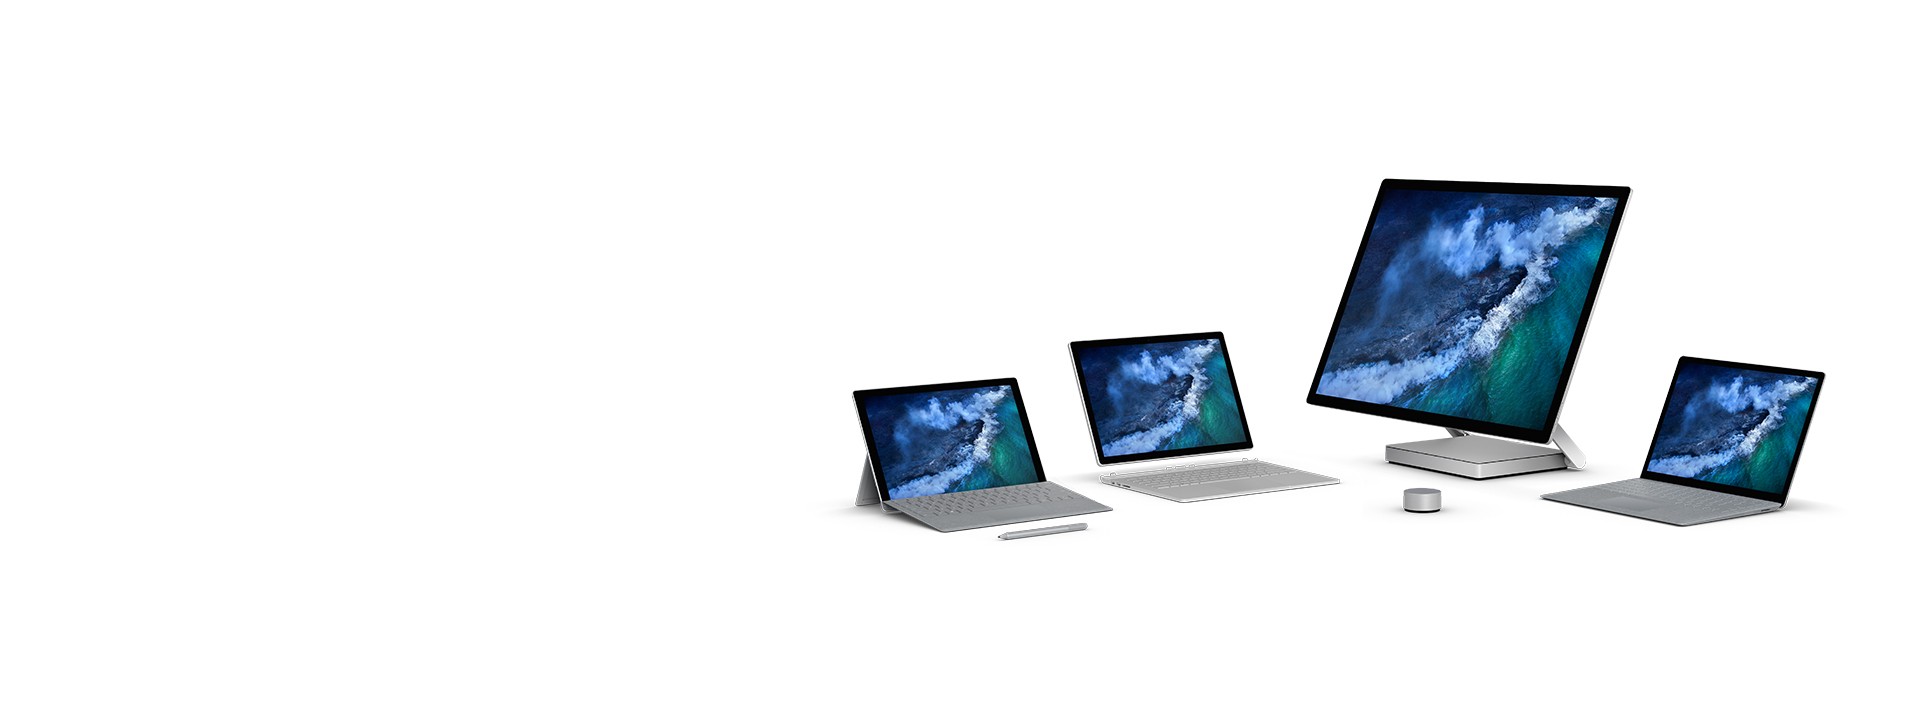 Surface ファミリー – Surface Pro、Surface Laptop、Surface Book 2、および Surface Studio